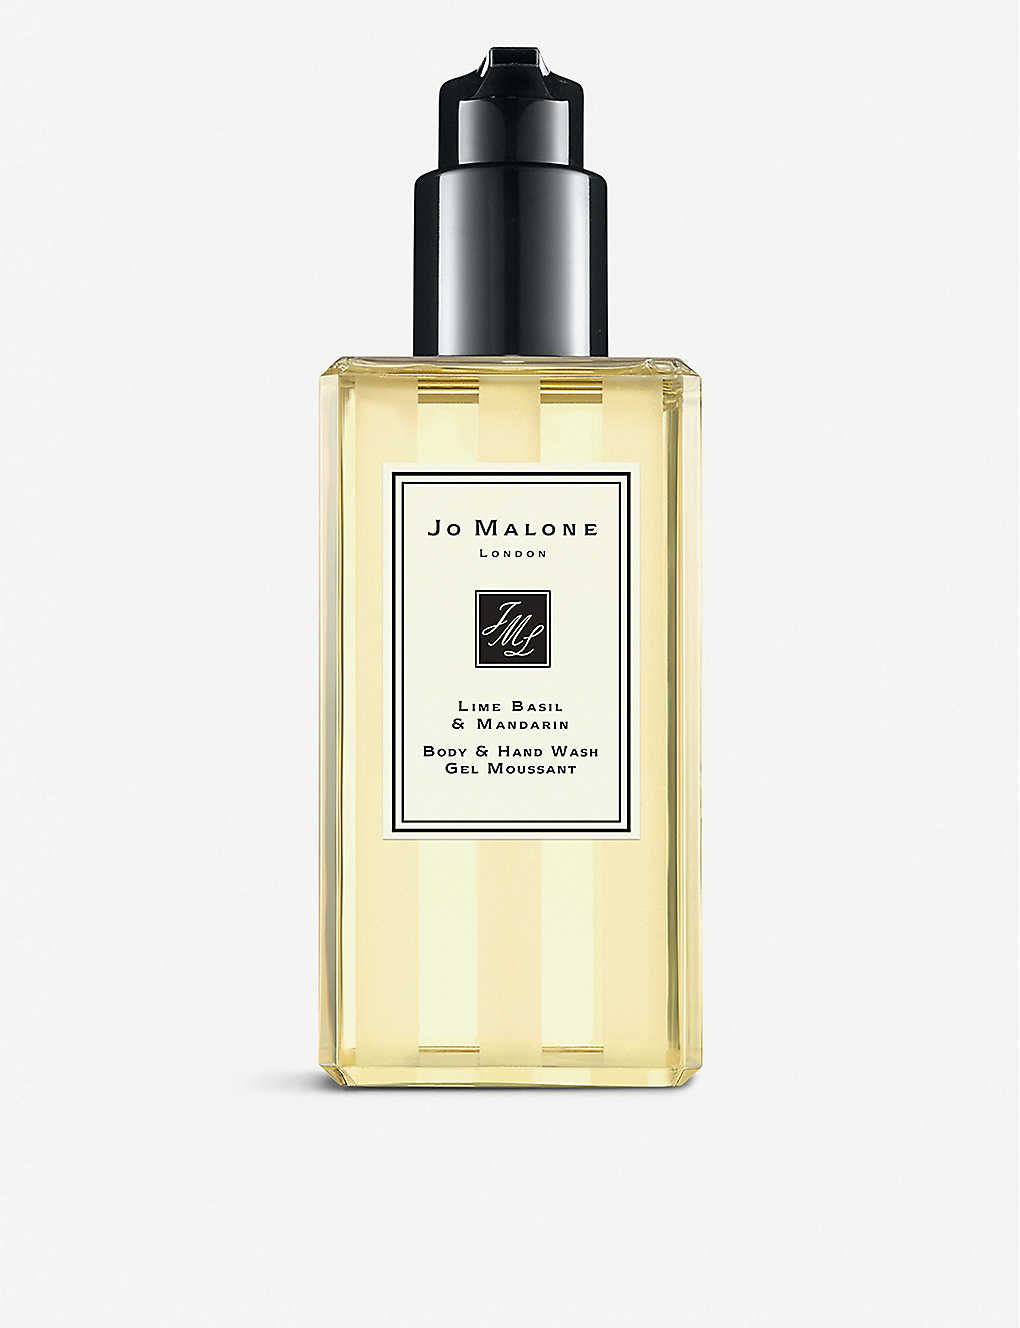 bath shower bath bodycare beauty selfridges shop online jo malone london lime basil mandarin body hand wash 100ml